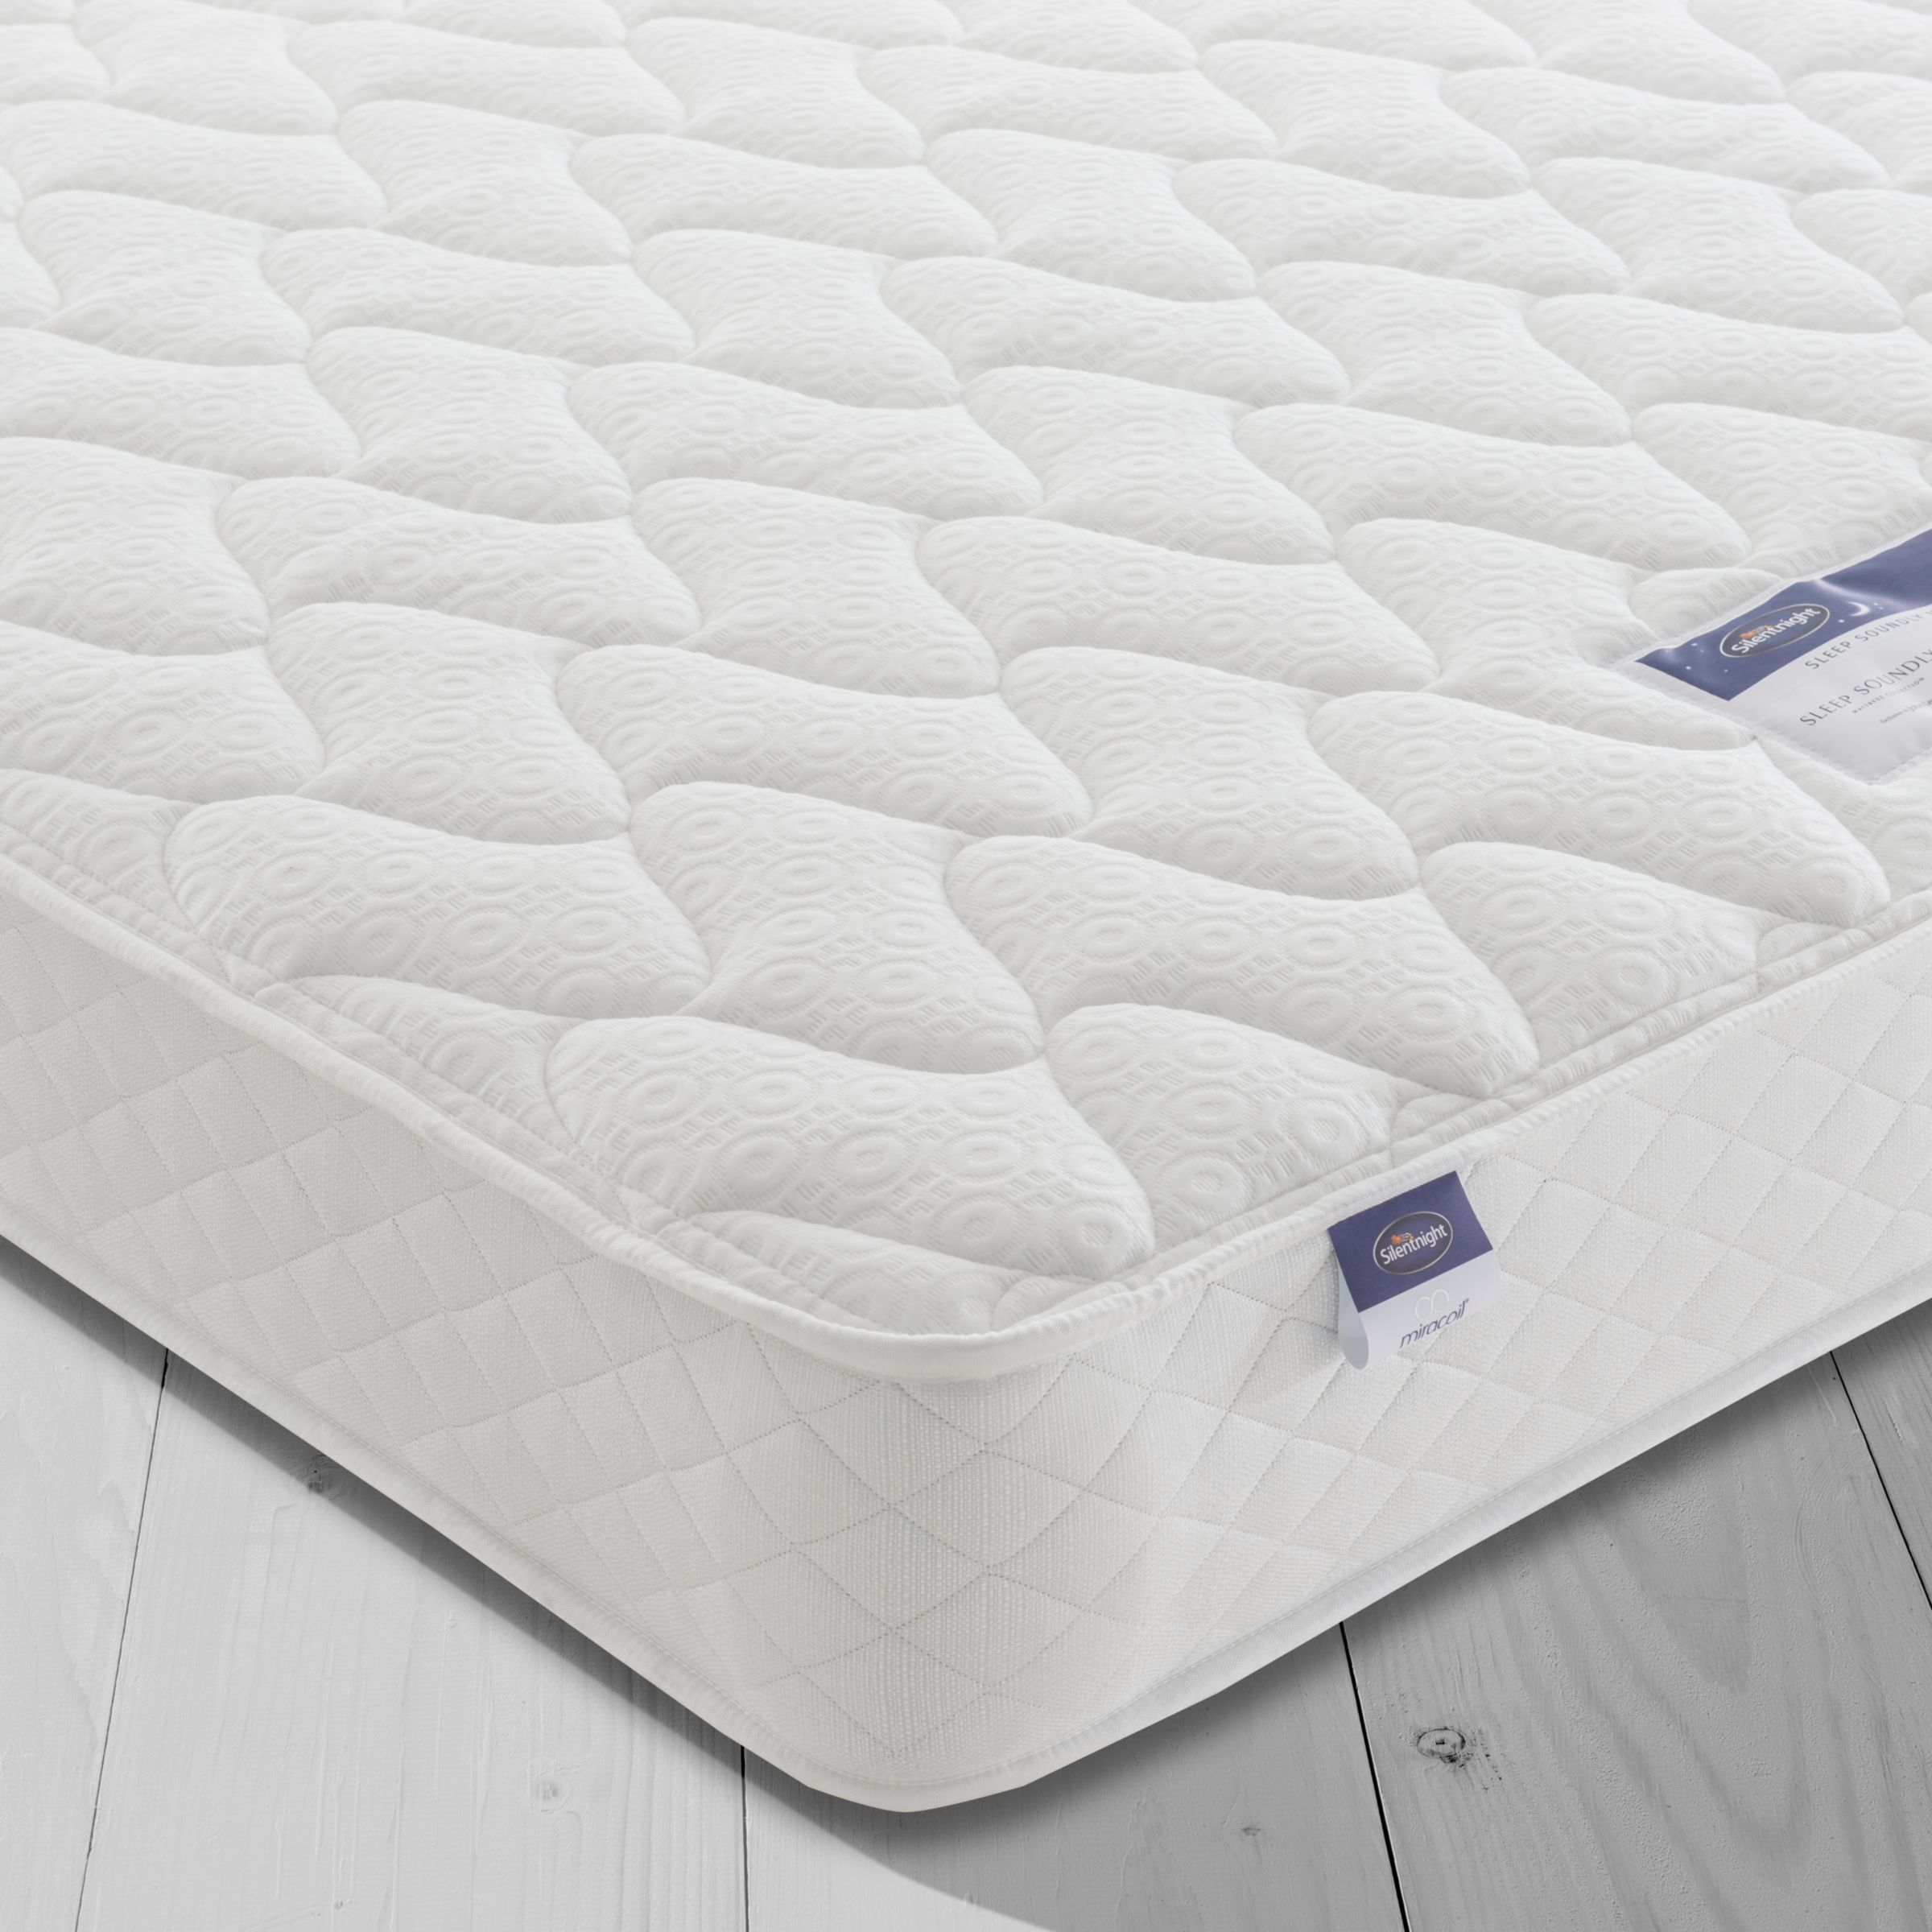 mattresses best sleep side sleepers sleeper is mattress stomach hotel for in simple reviews